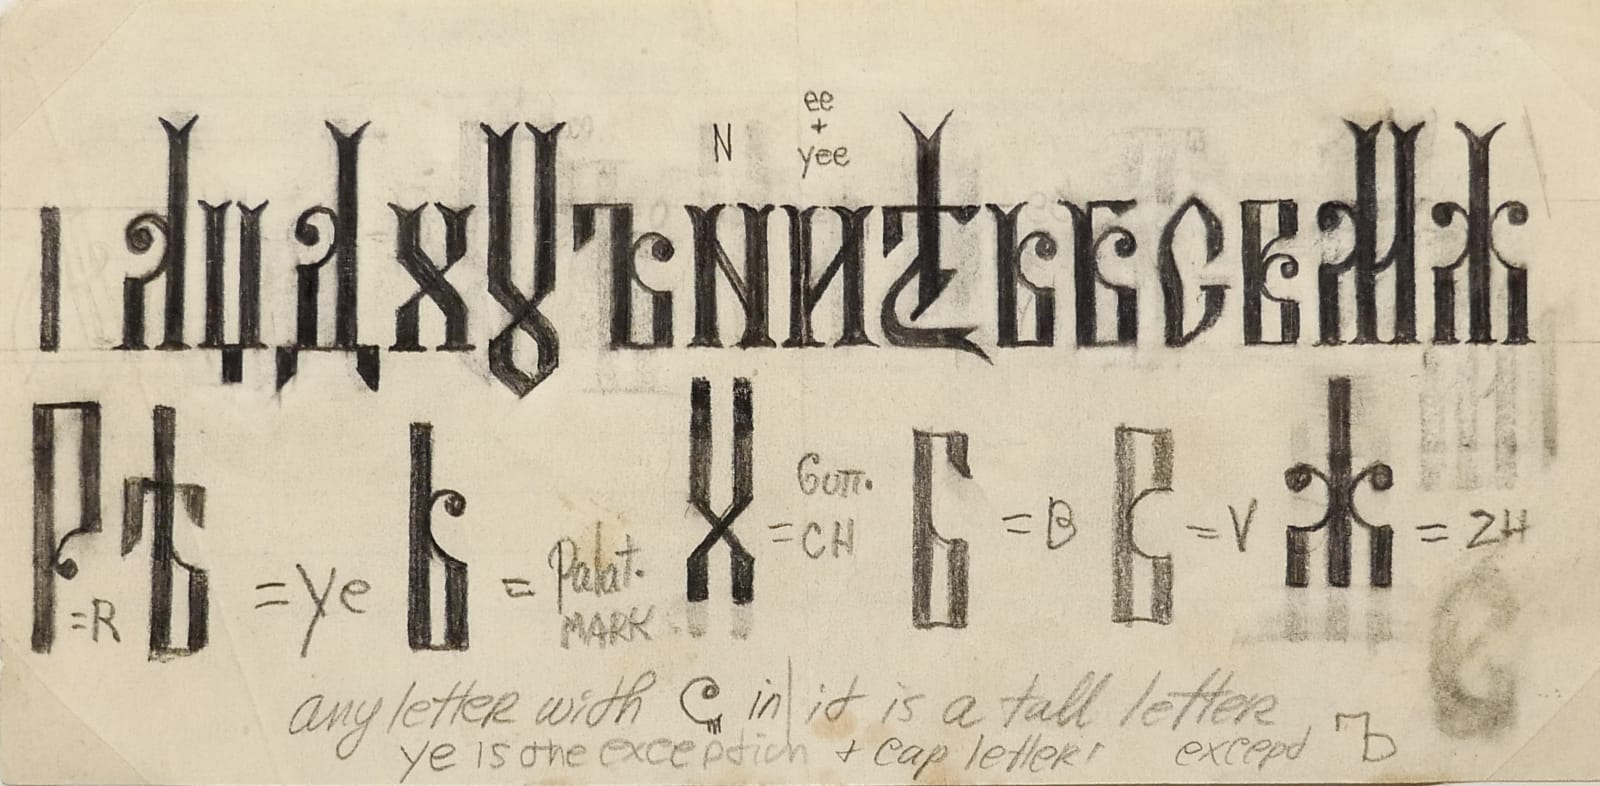 Any letter with C in it is a tall letter (calligraphy) 1970s Pencil on sketch paper 3 1/2 x 7 in (RK 119) $2,000